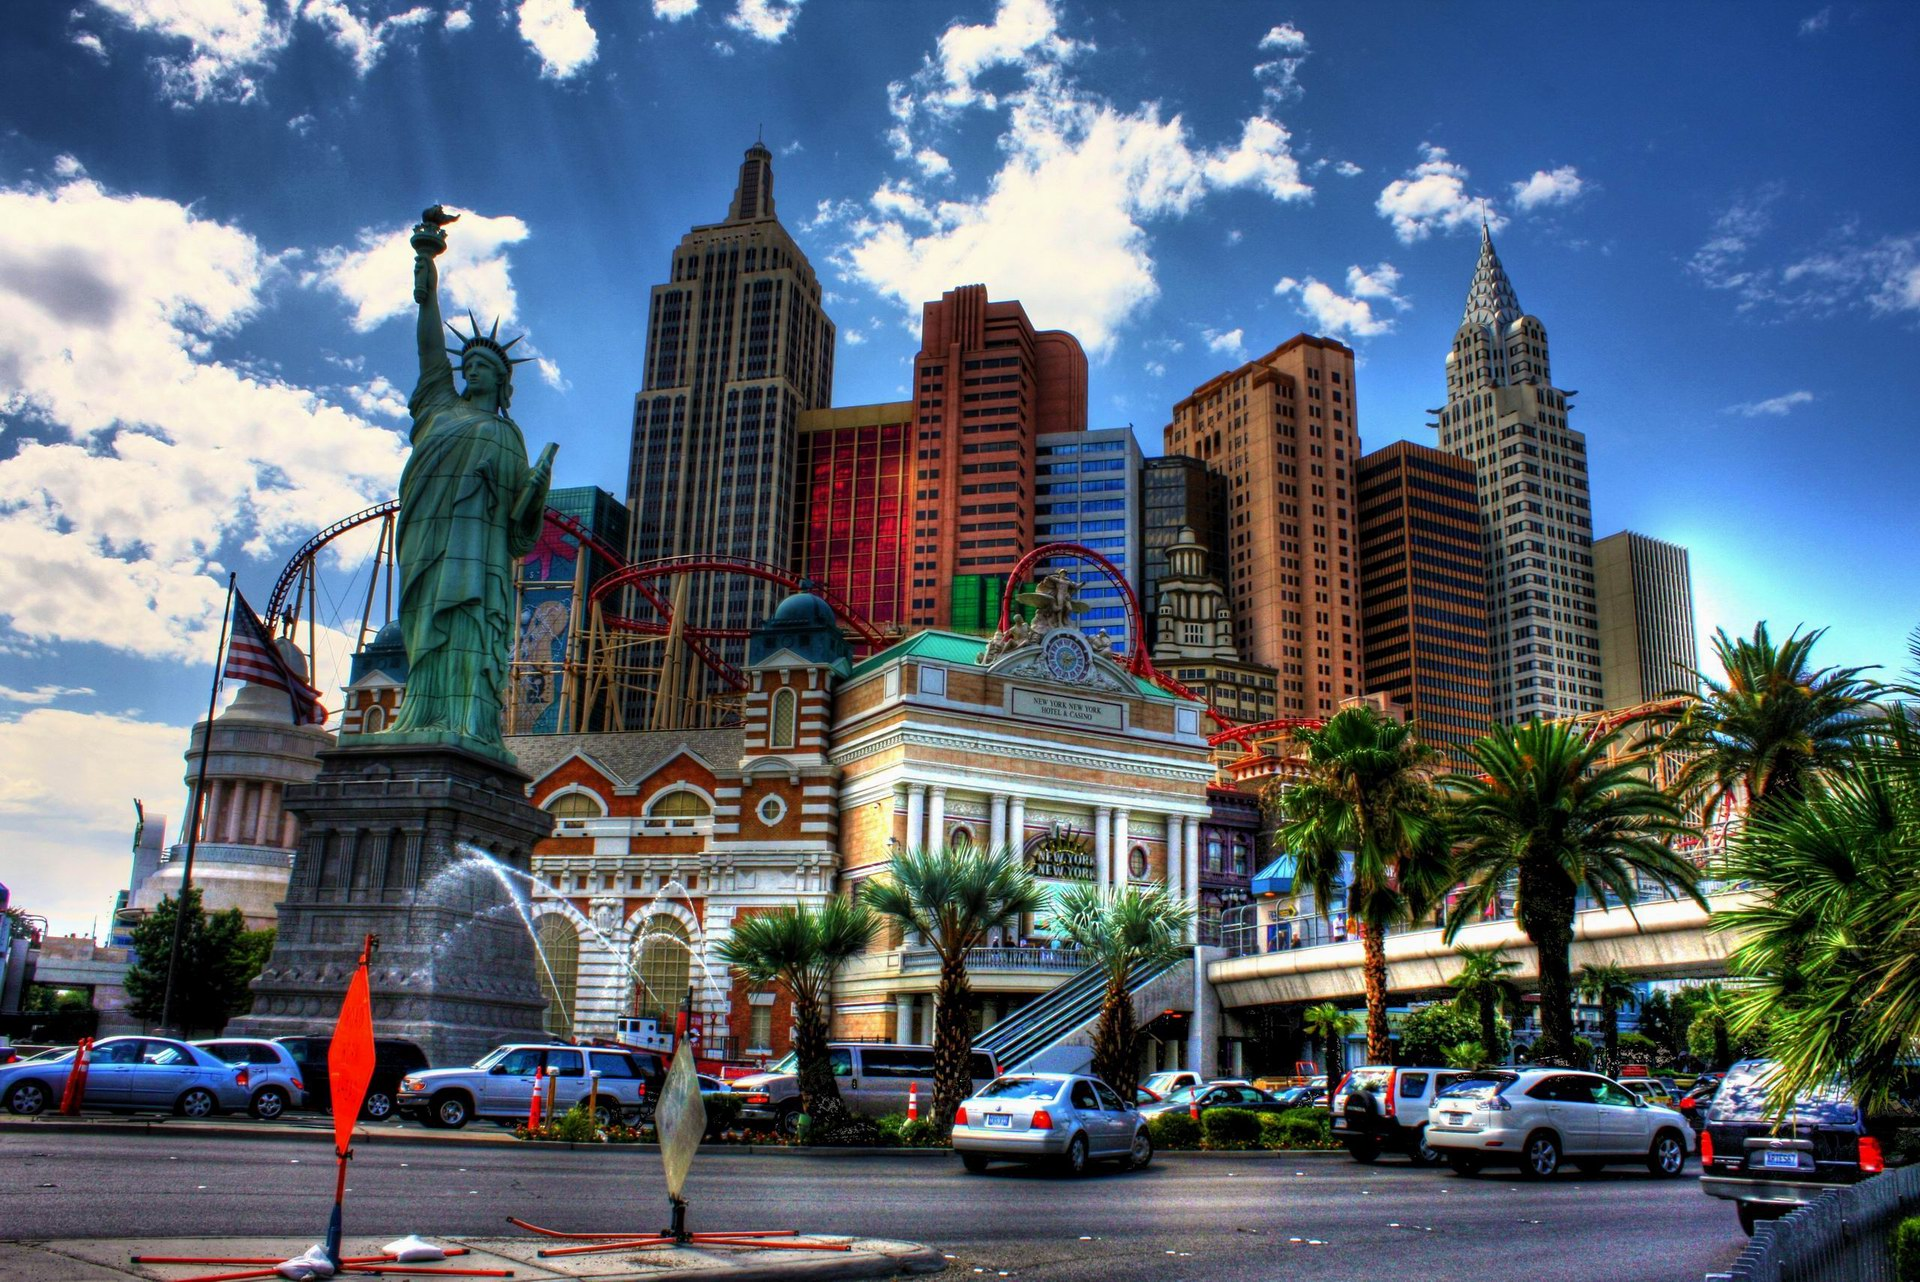 las vegas Stay in the middle of the las vegas strip at monte carlo resort and casino just steps away from t-mobile arena book direct and get our best rates guaranteed.